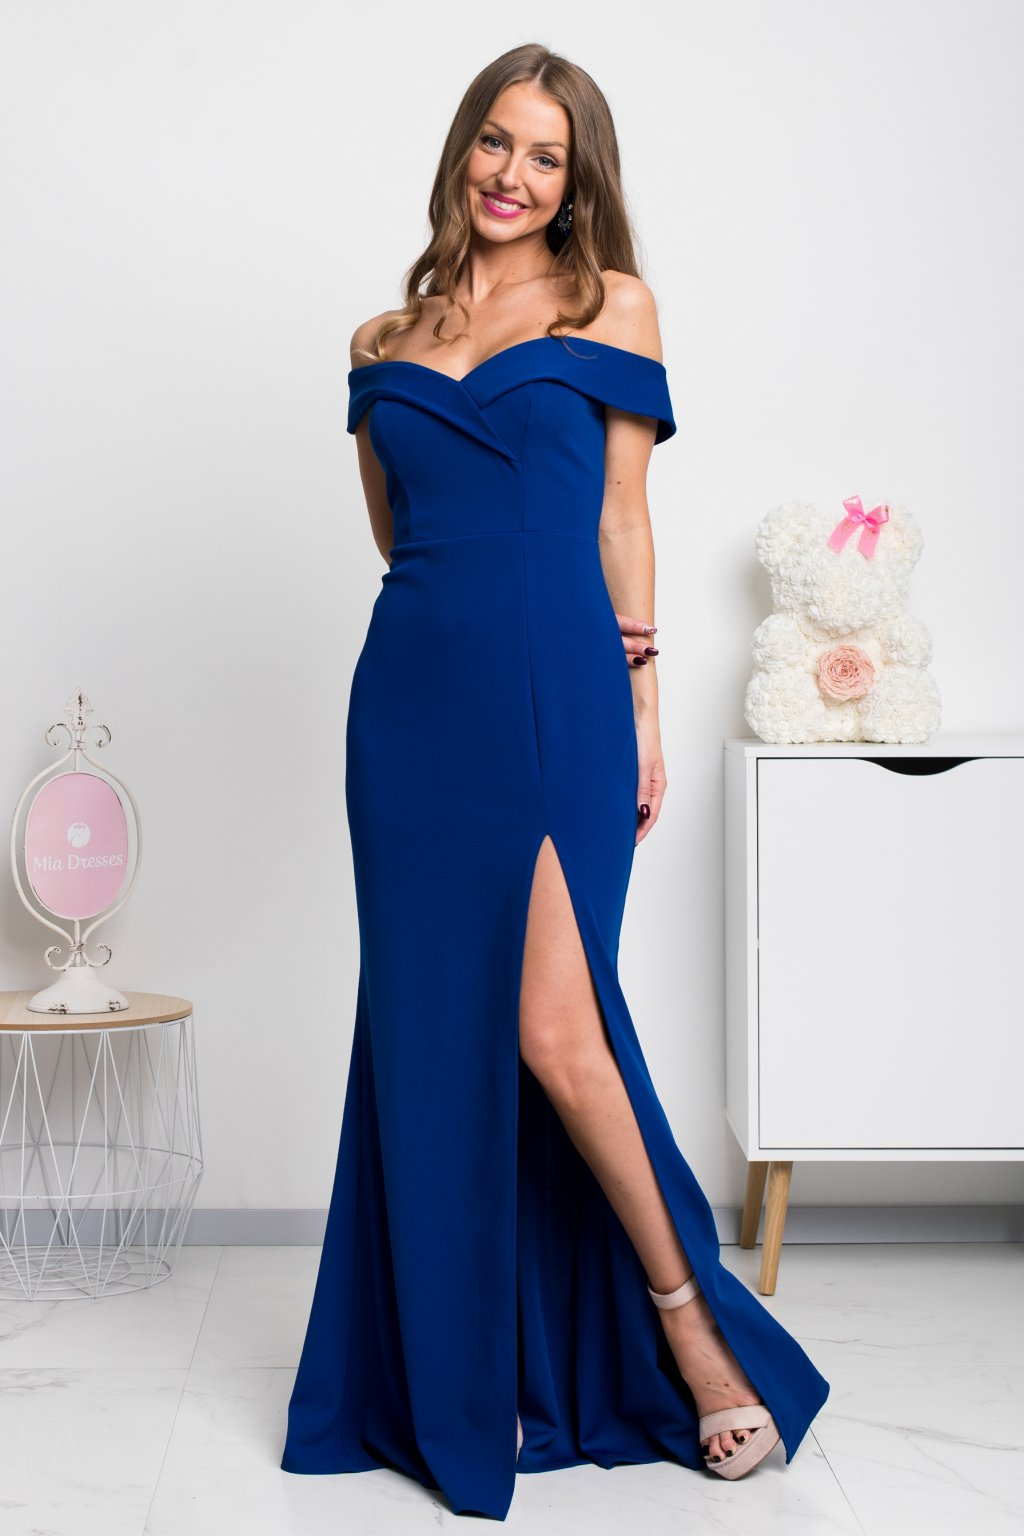 Blue split maxi dress